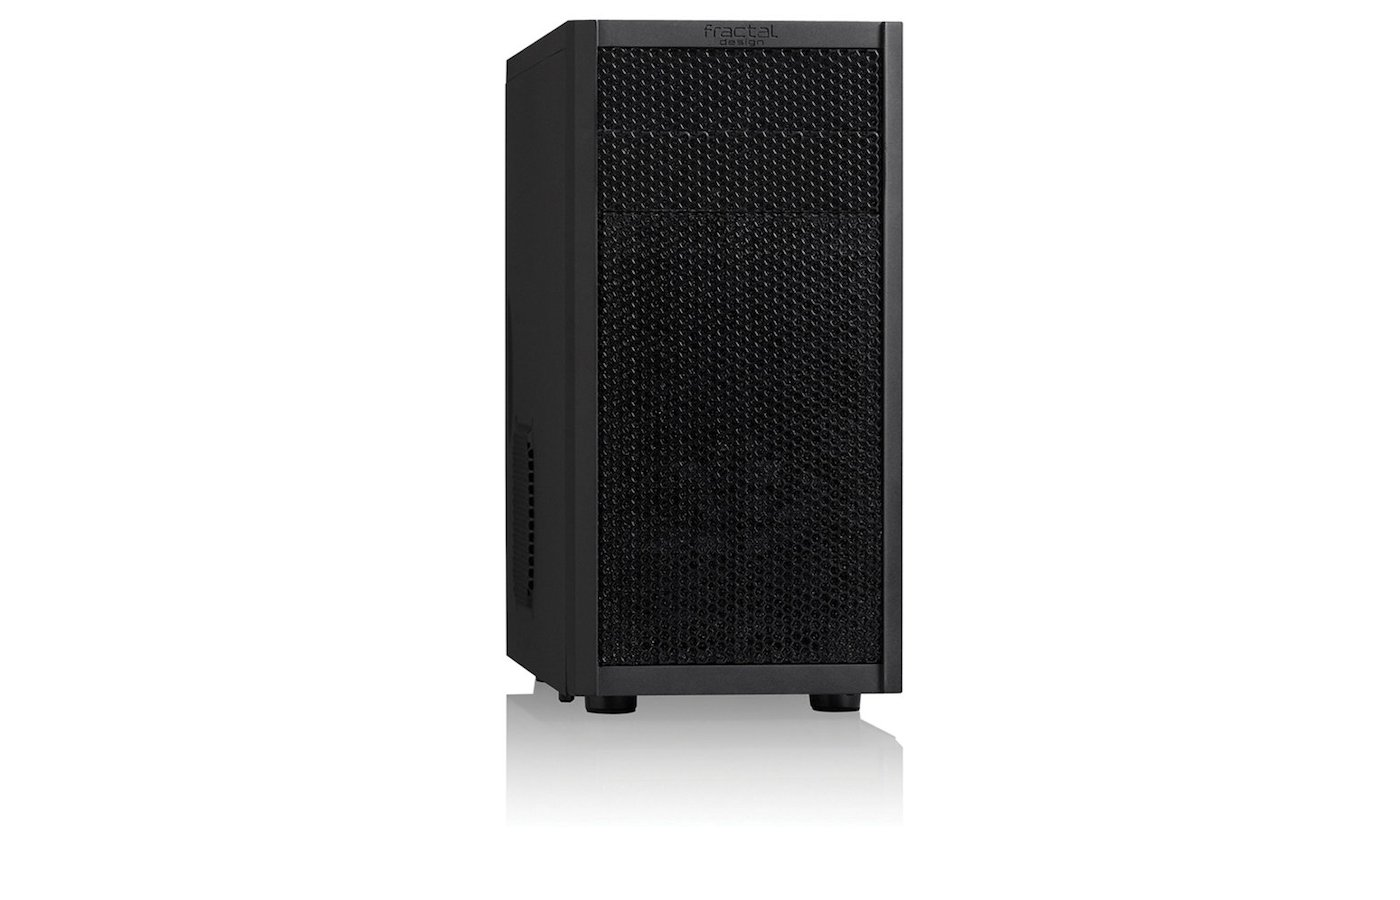 Корпус Fractal Design Core 1000 черный w/o PSU mATX 1x120mm 1xUSB2.0 1xUSB3.0 audio